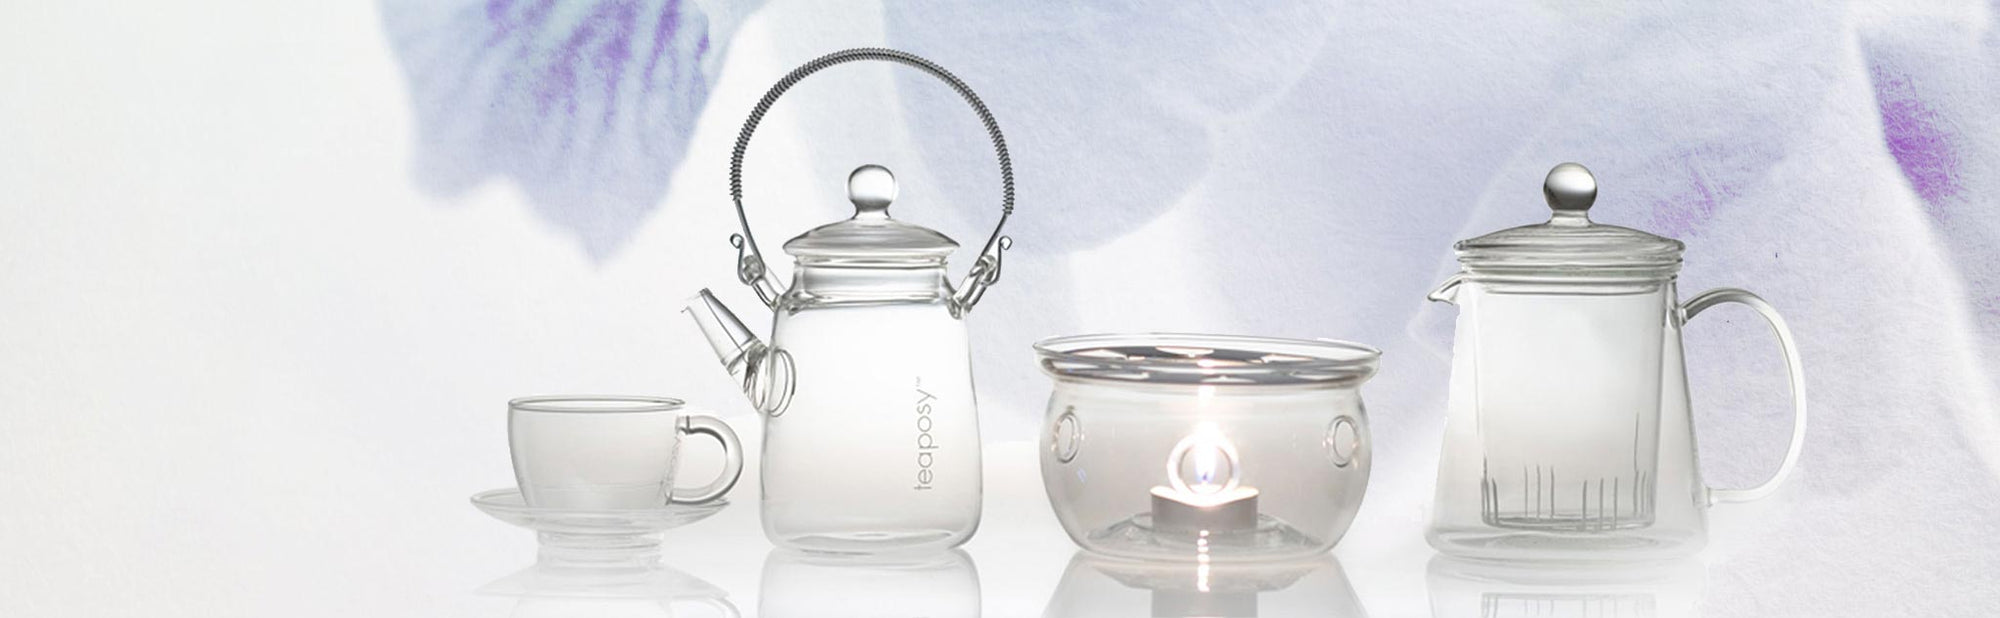 A collection of four glass teawares including two teapots one cup and saucer set, and a tea warmer